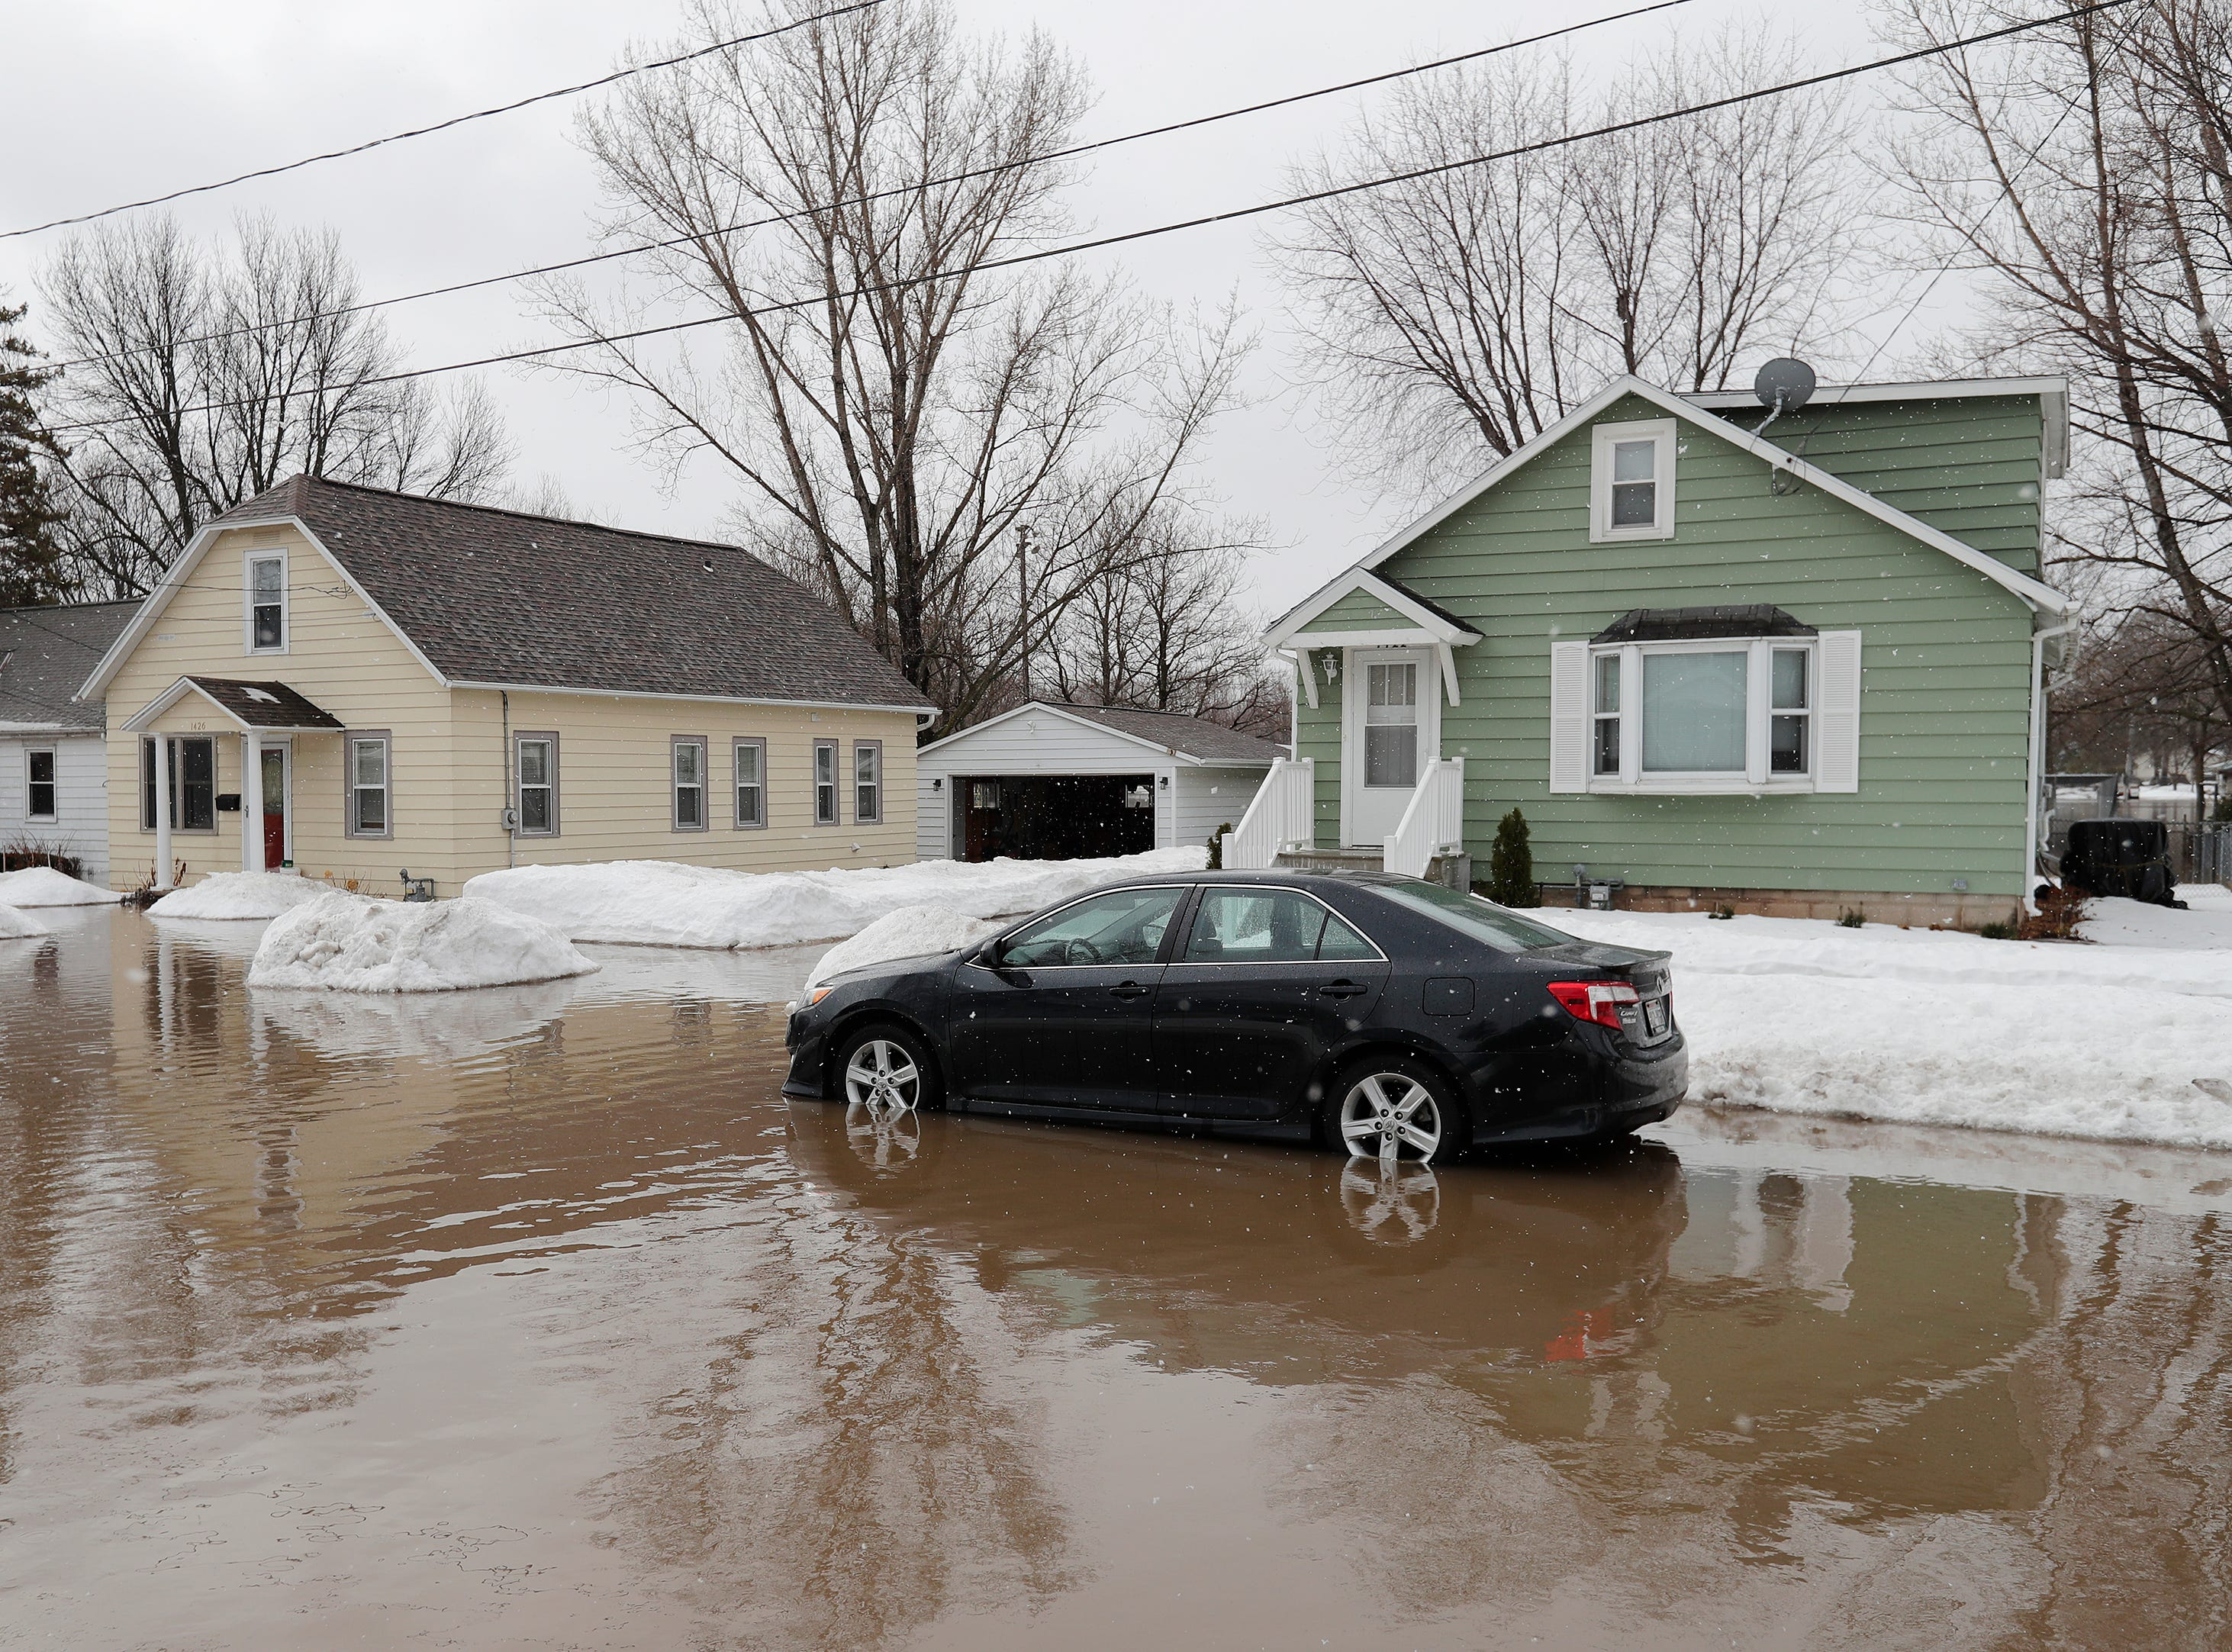 A car sits in standing floodwaters from the East river on Friday, March 15, 2019 in Green Bay, Wis.